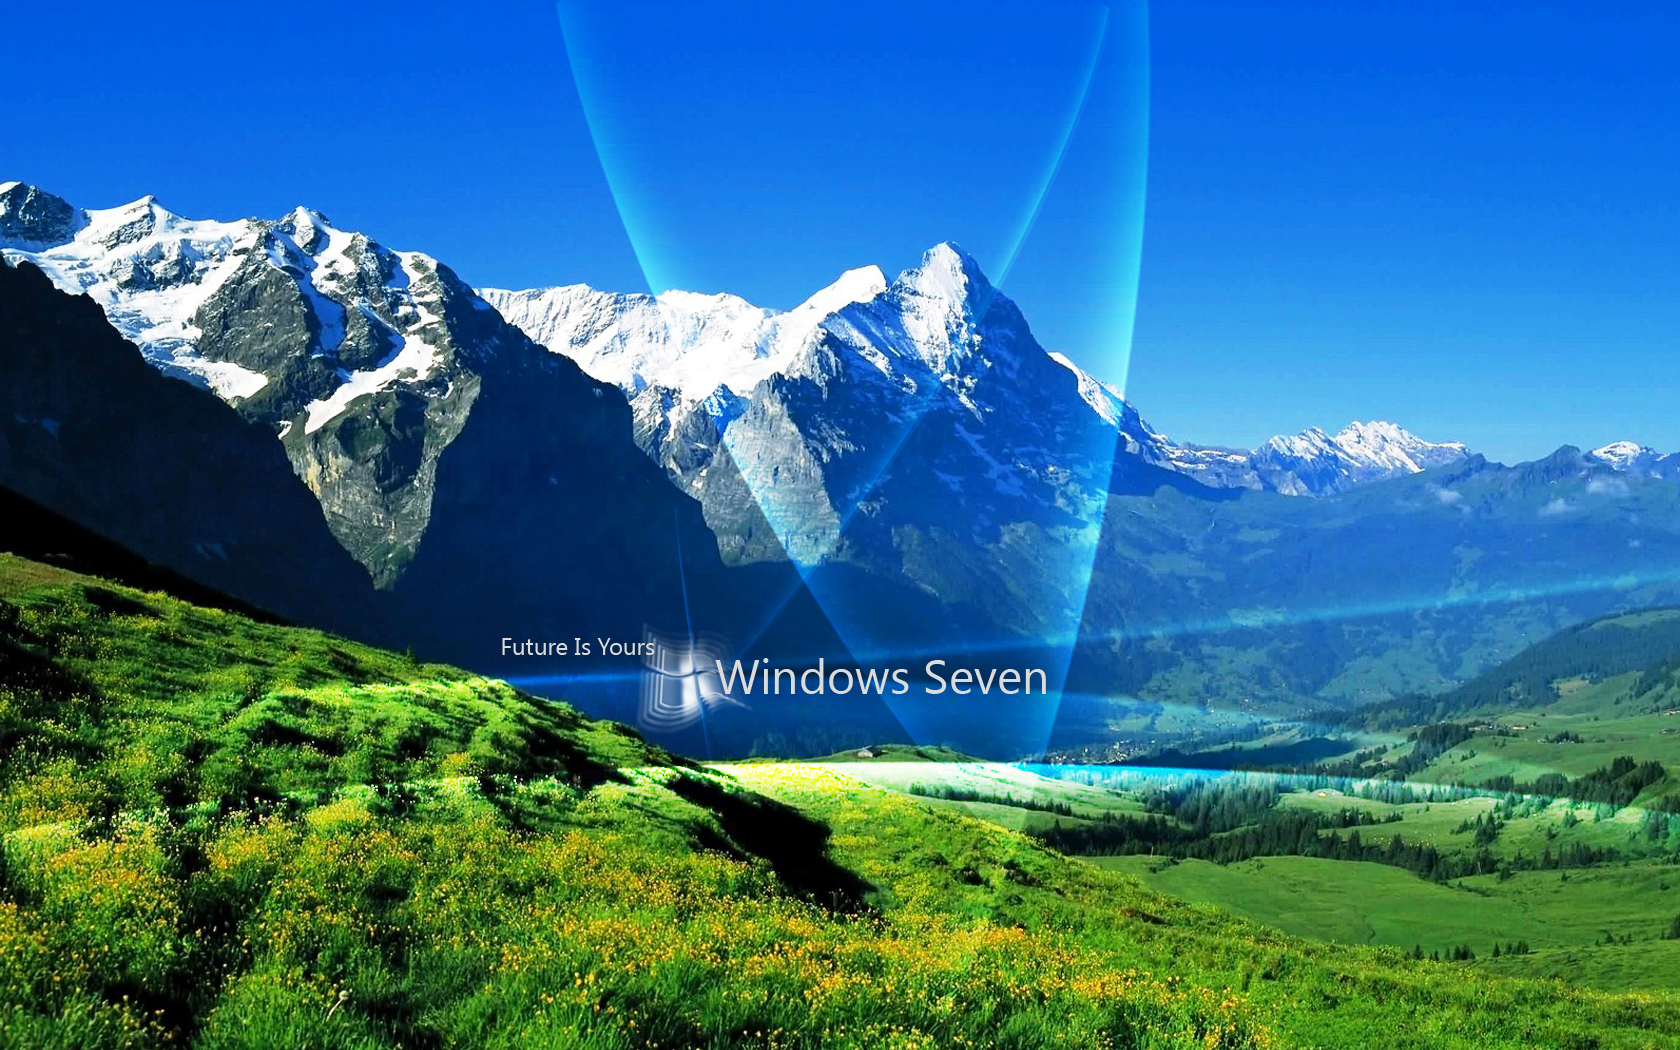 windows-7-seven-future-is-yours-wallpaper